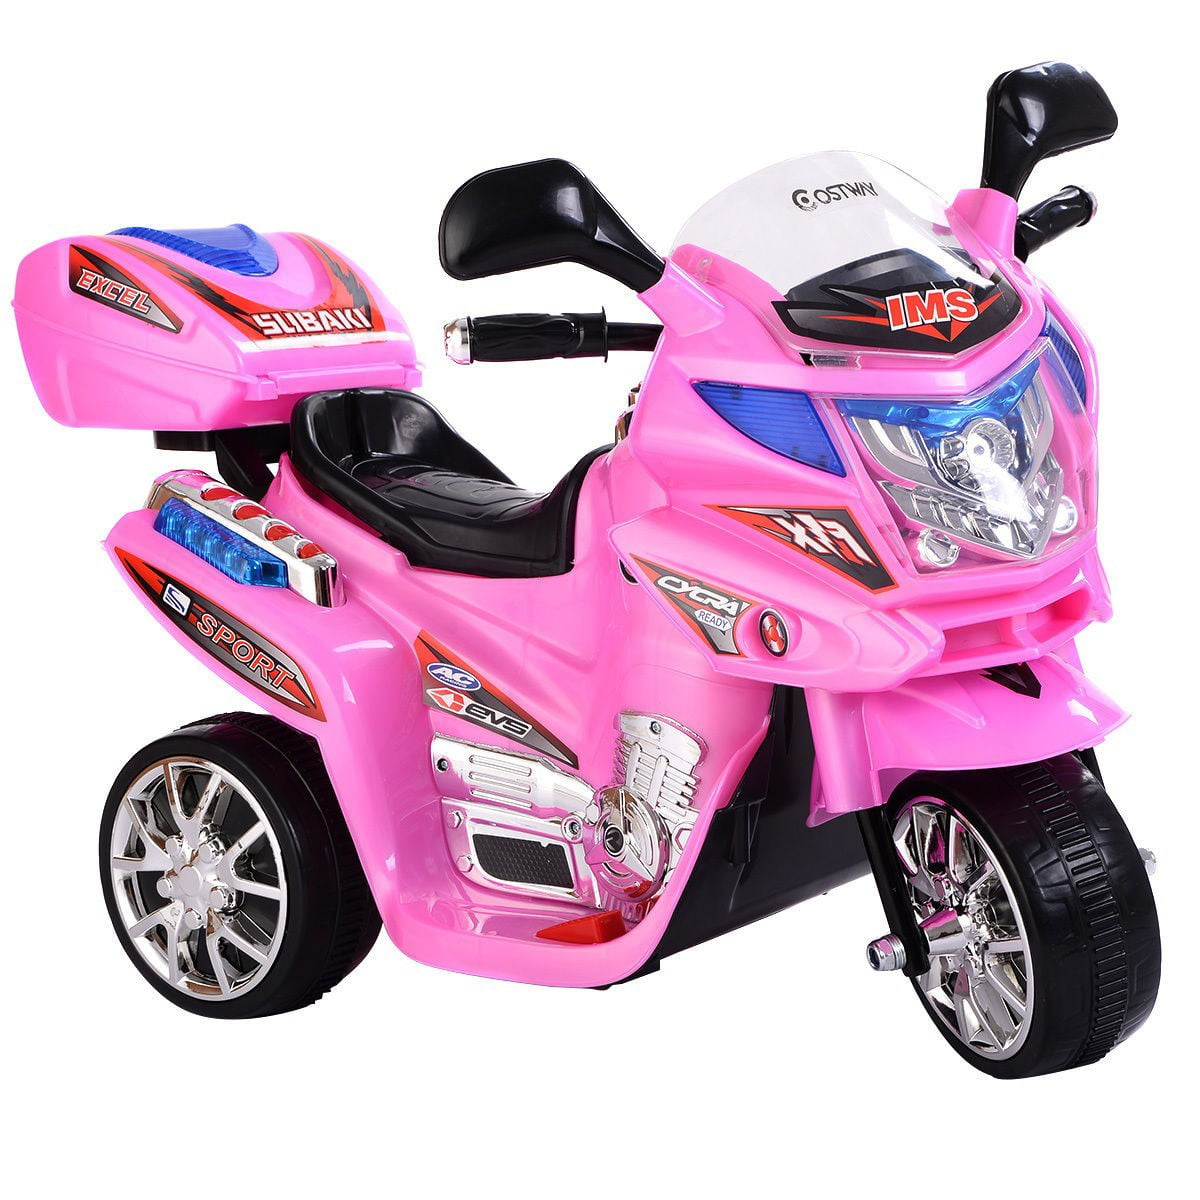 Kids Ride On Motorcycle 6V Battery Powered Electric Toy Power Bicyle New Pink by Apontus